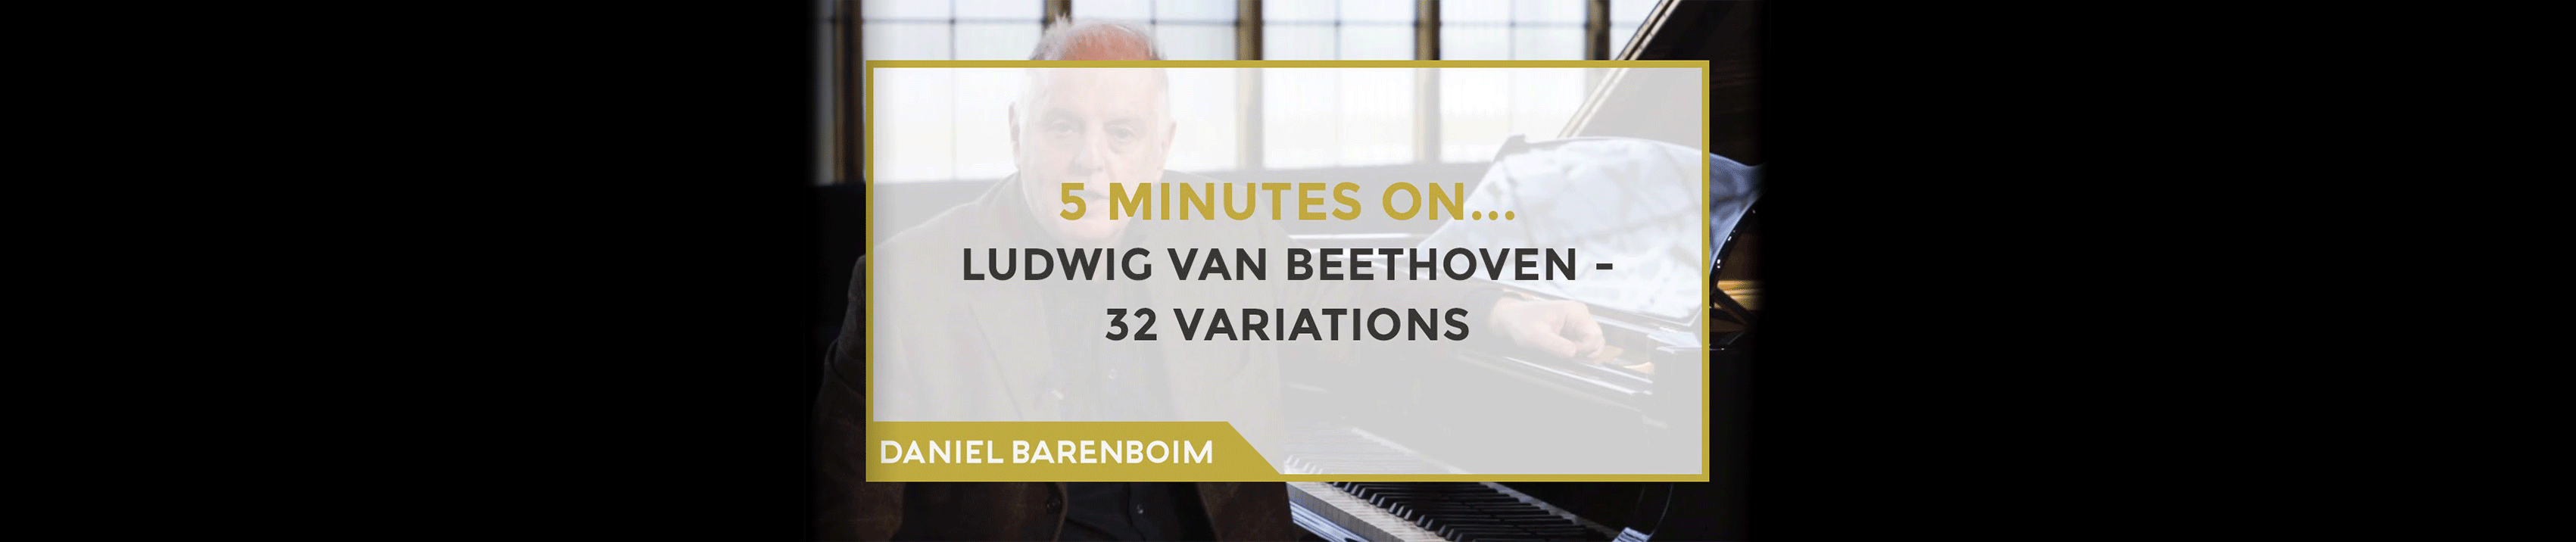 Daniel Barenboim, Beethoven's 32 Variations in C Minor